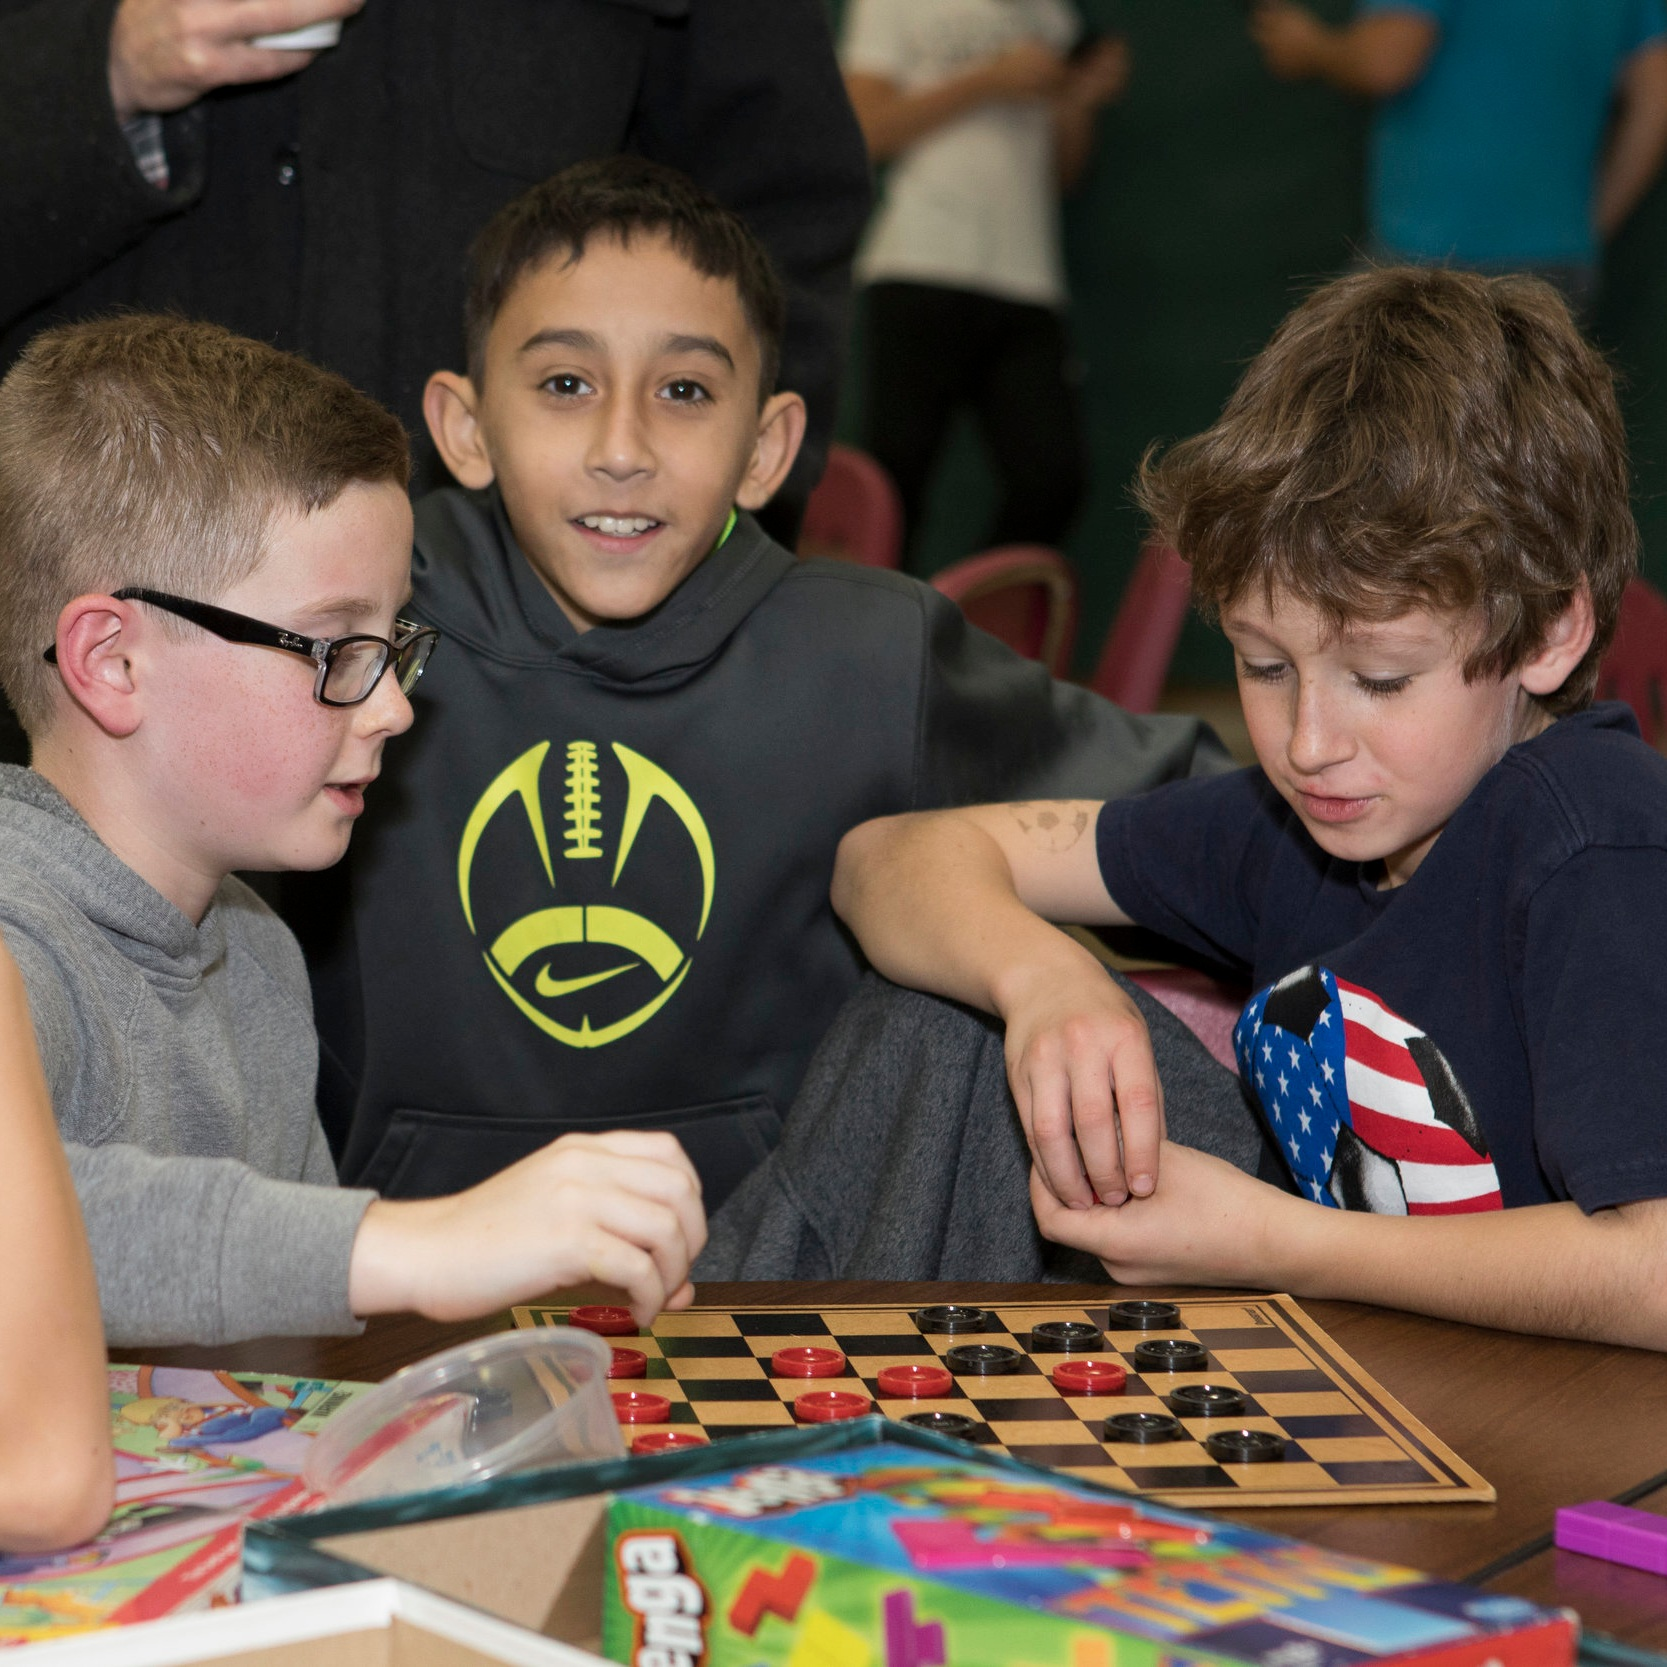 Children's Clubs - 6:30-7:30 PMChildren's clubs at Westminster church are intended to help boys and girls aged 4 through grade 6 develop Christian character and build relationships with God, peers, family, and caring adults. Parents, along with Christian men and women of Westminster Church, provide positive role models and promote spiritual growth as they integrate biblical pricipals into learning activities, service projects, fun, and games. Clubs meet weekly September-May, 6:30 - 7:30 pm.Registration cutoff date is September 25. Registrations cannot be accepted mid-year.